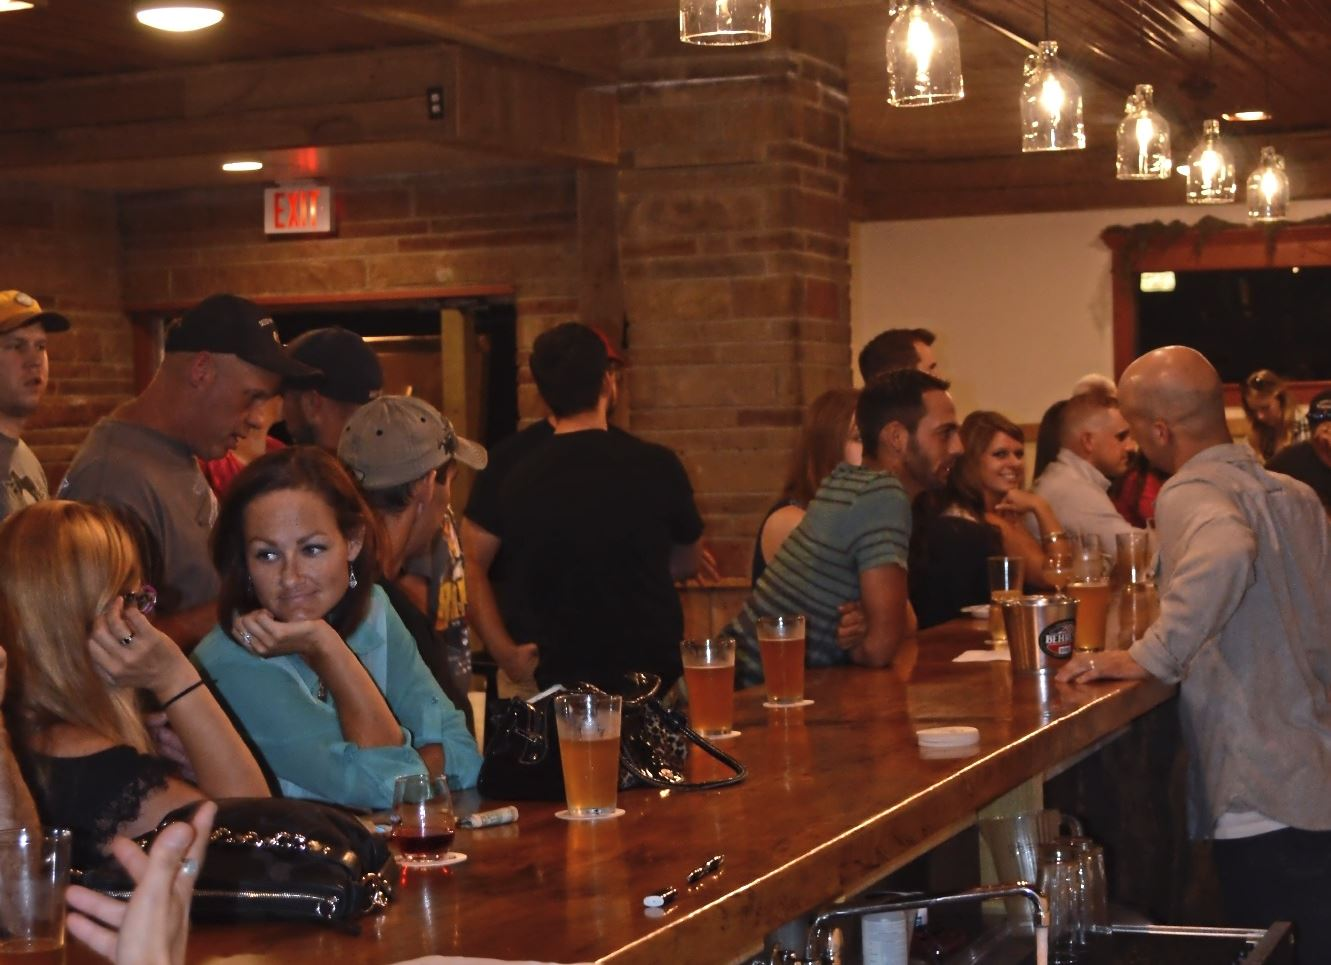 image2 (1) The bar at the new Conny Creek Brewing Co. near Lower Burrell in Westmoreland County.